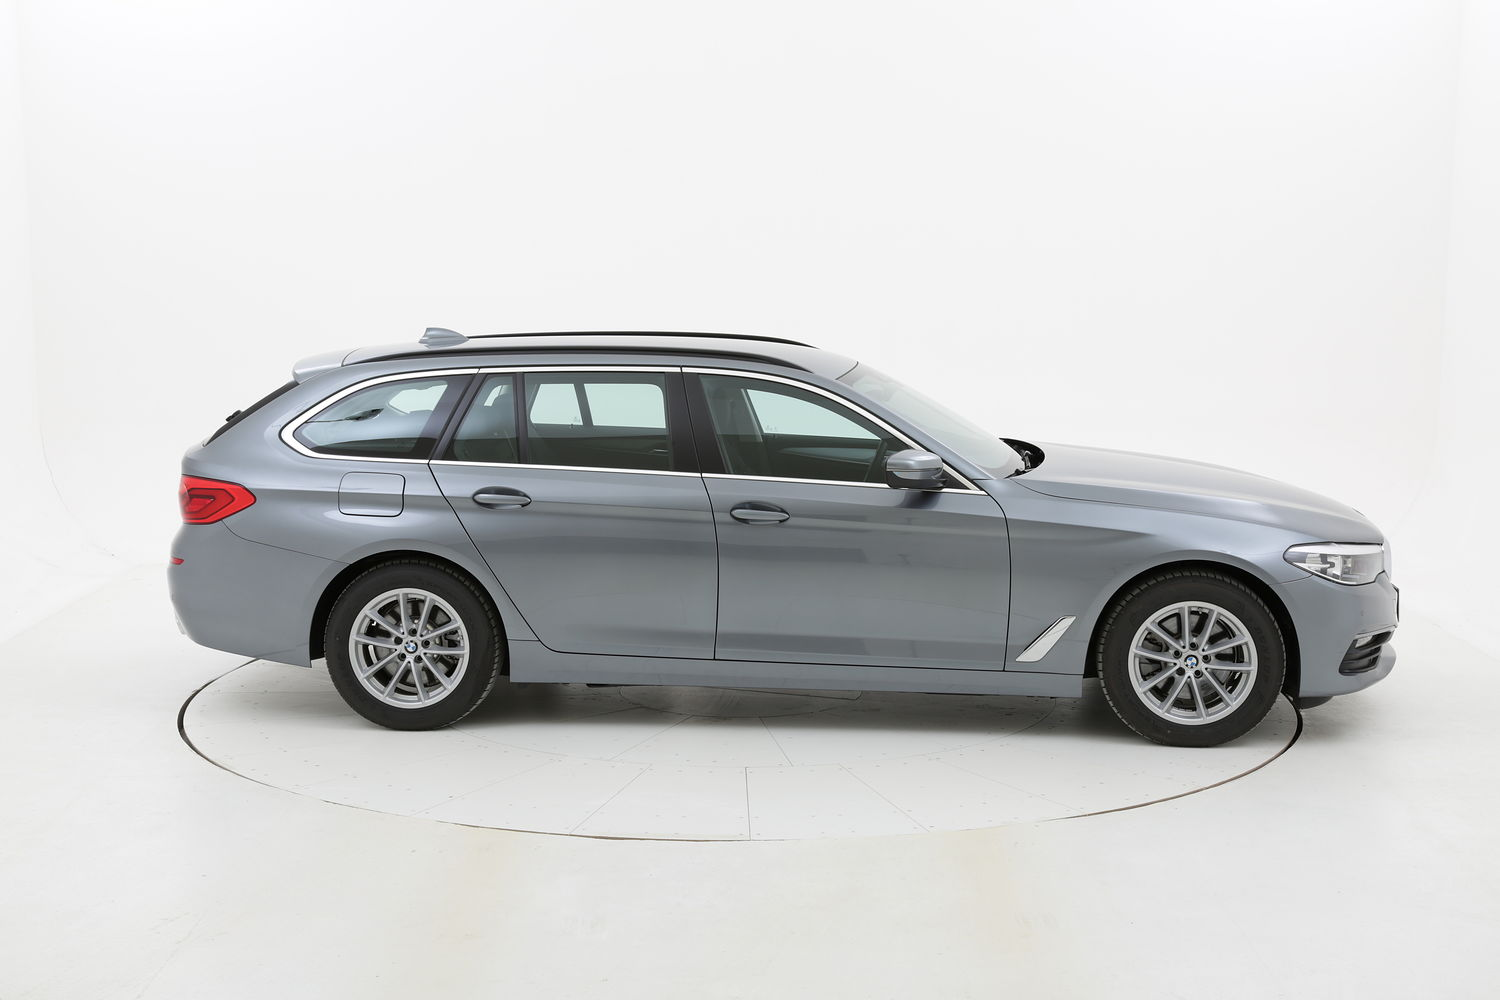 BMW Serie 5 18d Touring Business Automatico km 0 diesel grigia